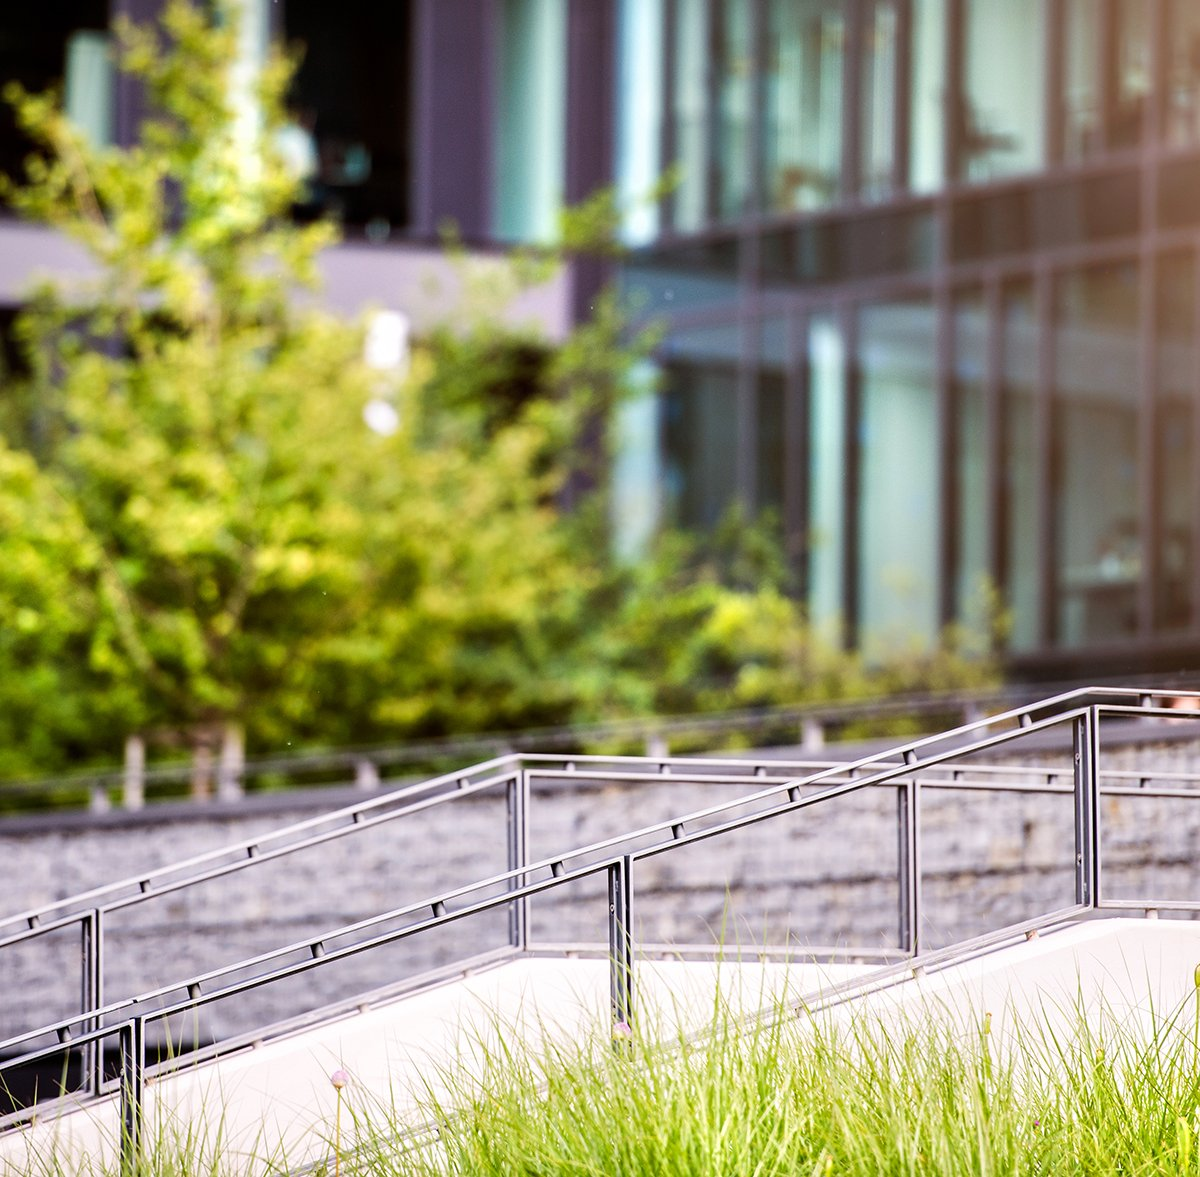 stairs-in-front-of-glass-buildings-business-office-PSGYAEW.jpg